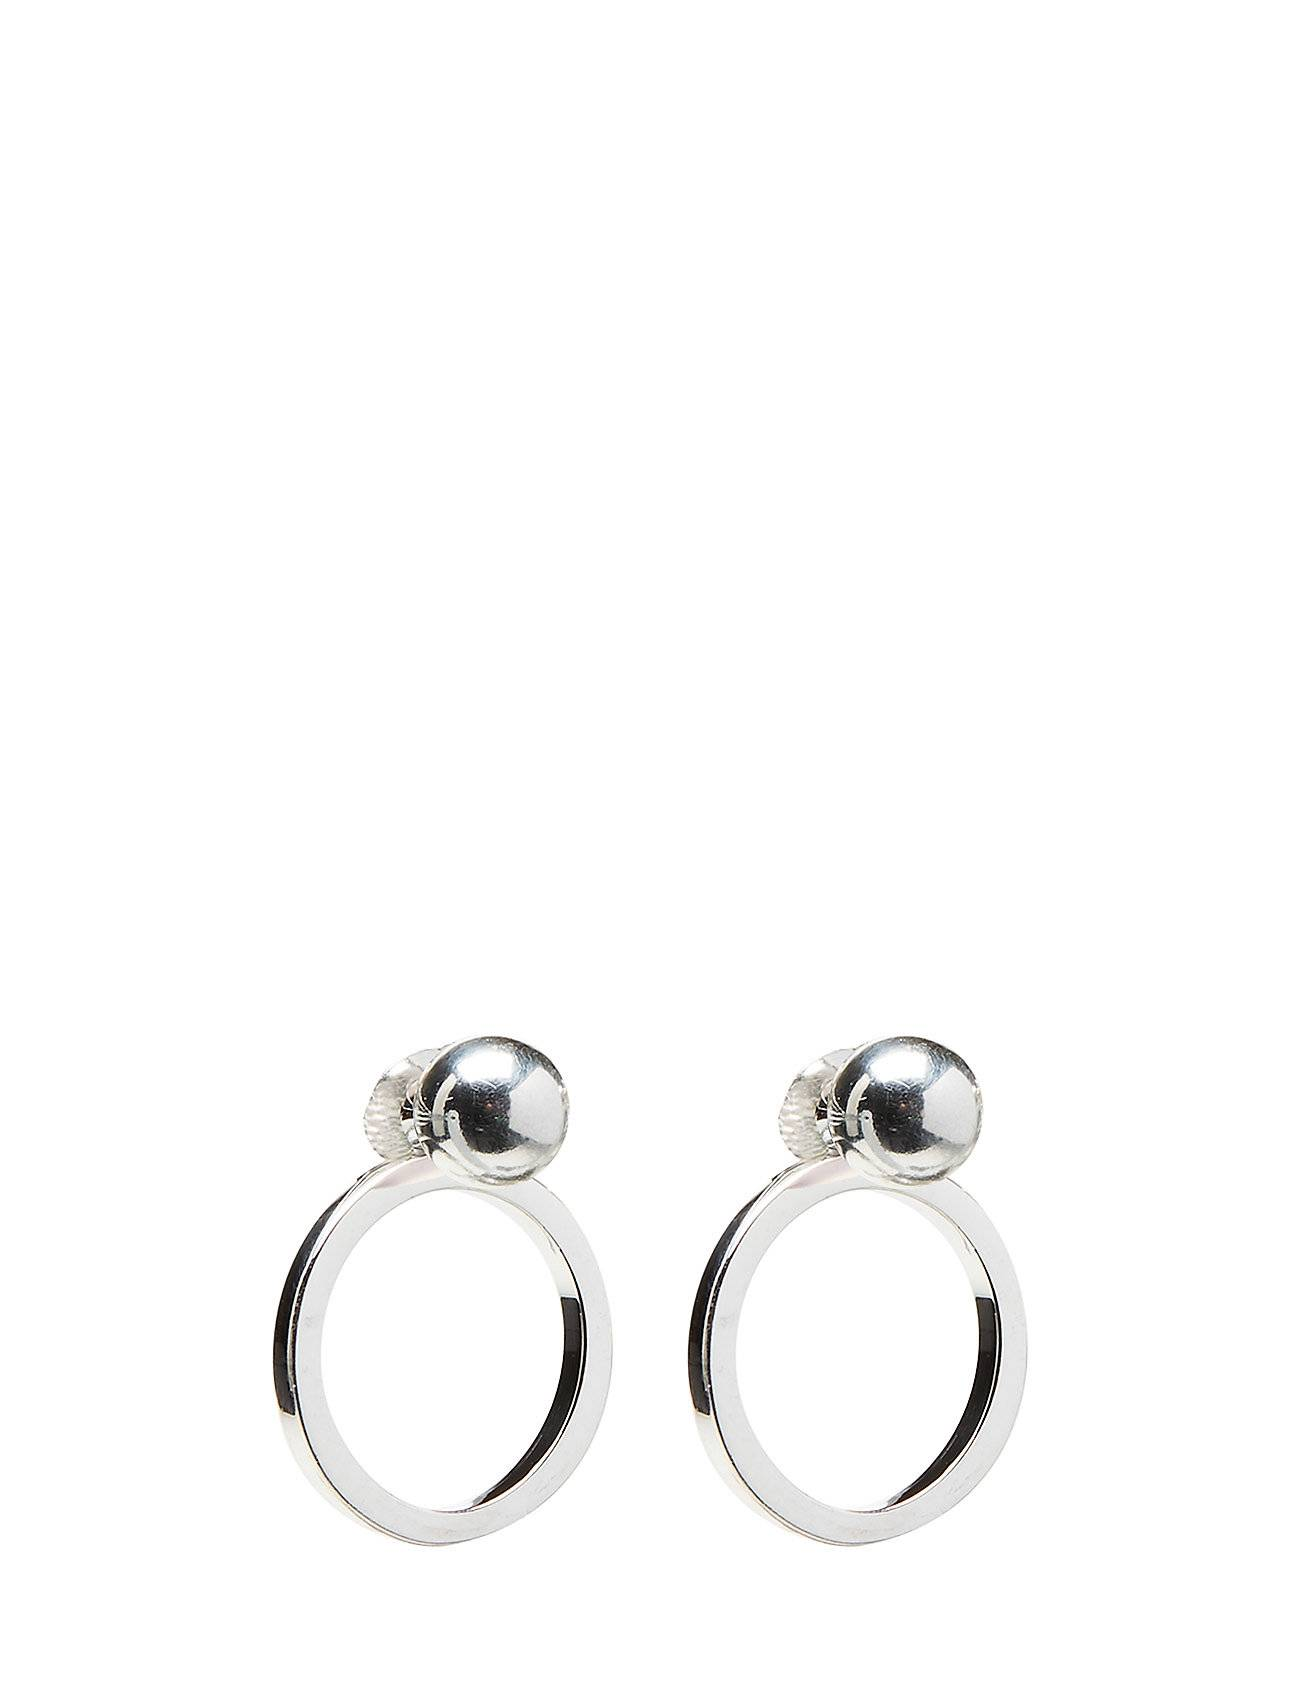 Syster P Planet Earrings Silver Silver Accessories Jewellery Earrings Studs Hopea Syster P